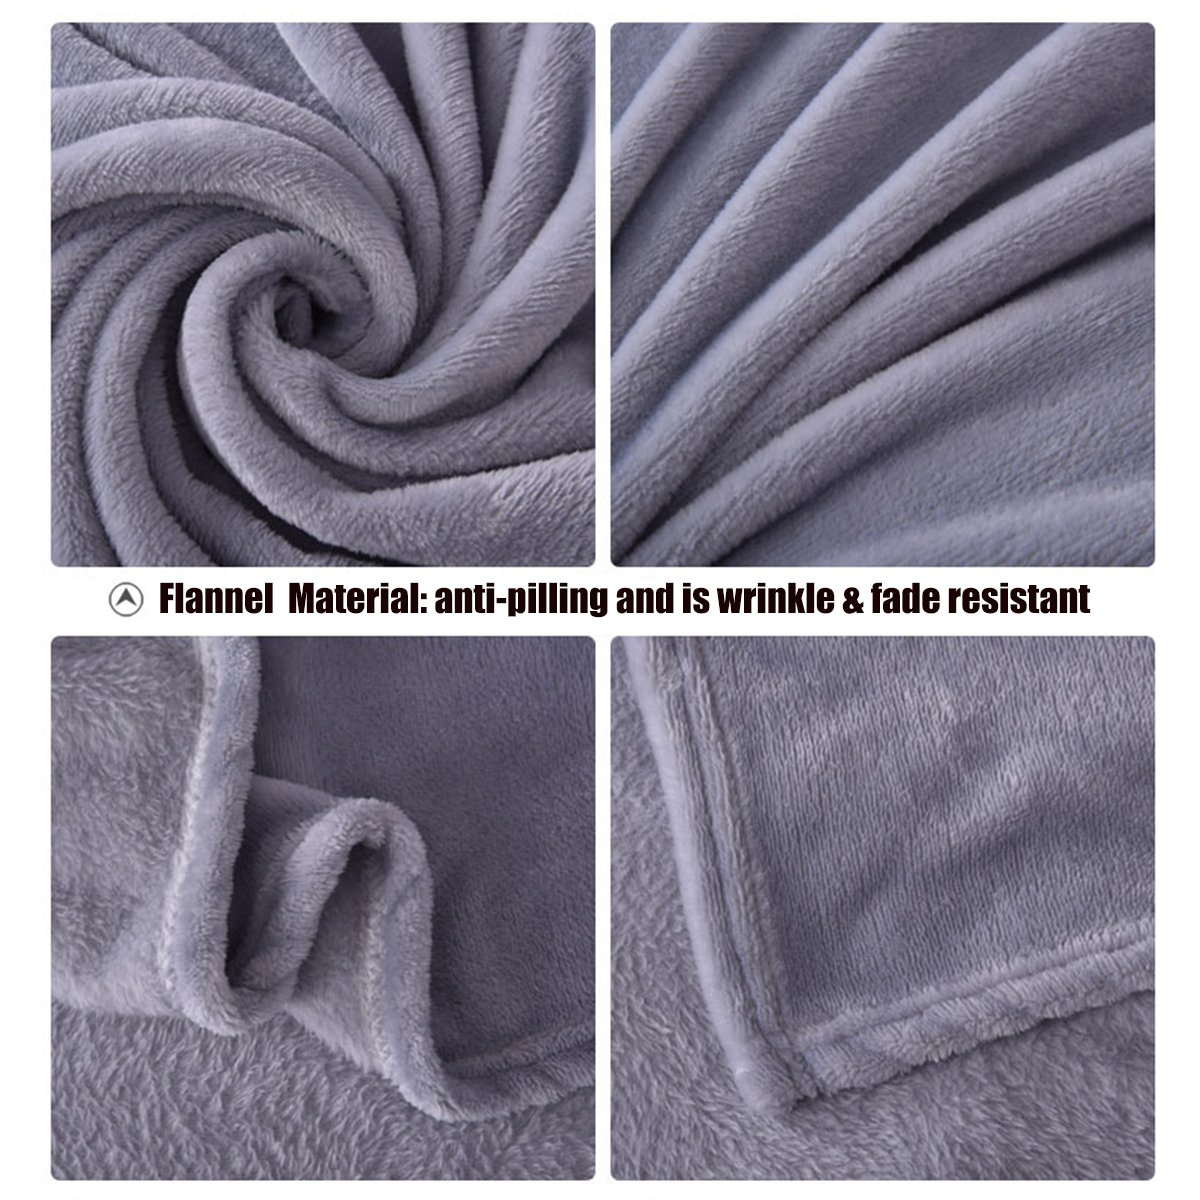 EASTSURE Soft Flannel Fleece Blanket Luxury Bed Sofa Throw Lightweight Summer,Grey,59x79 59x79